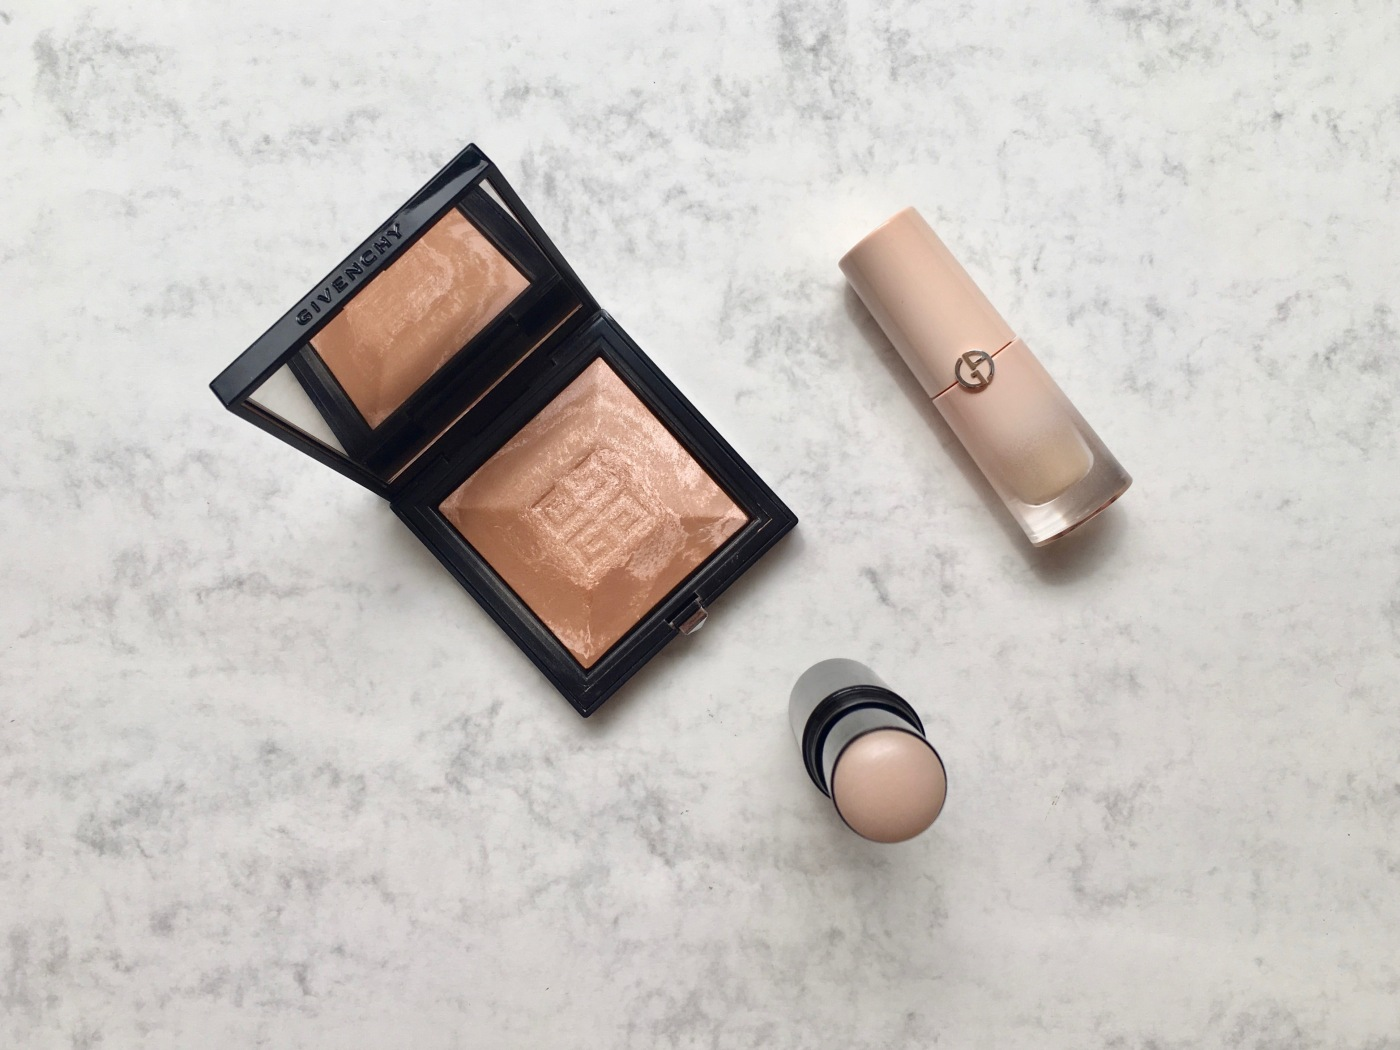 highlighter Giorgio Armani Givenchy Chanel highlight powder highlight stick